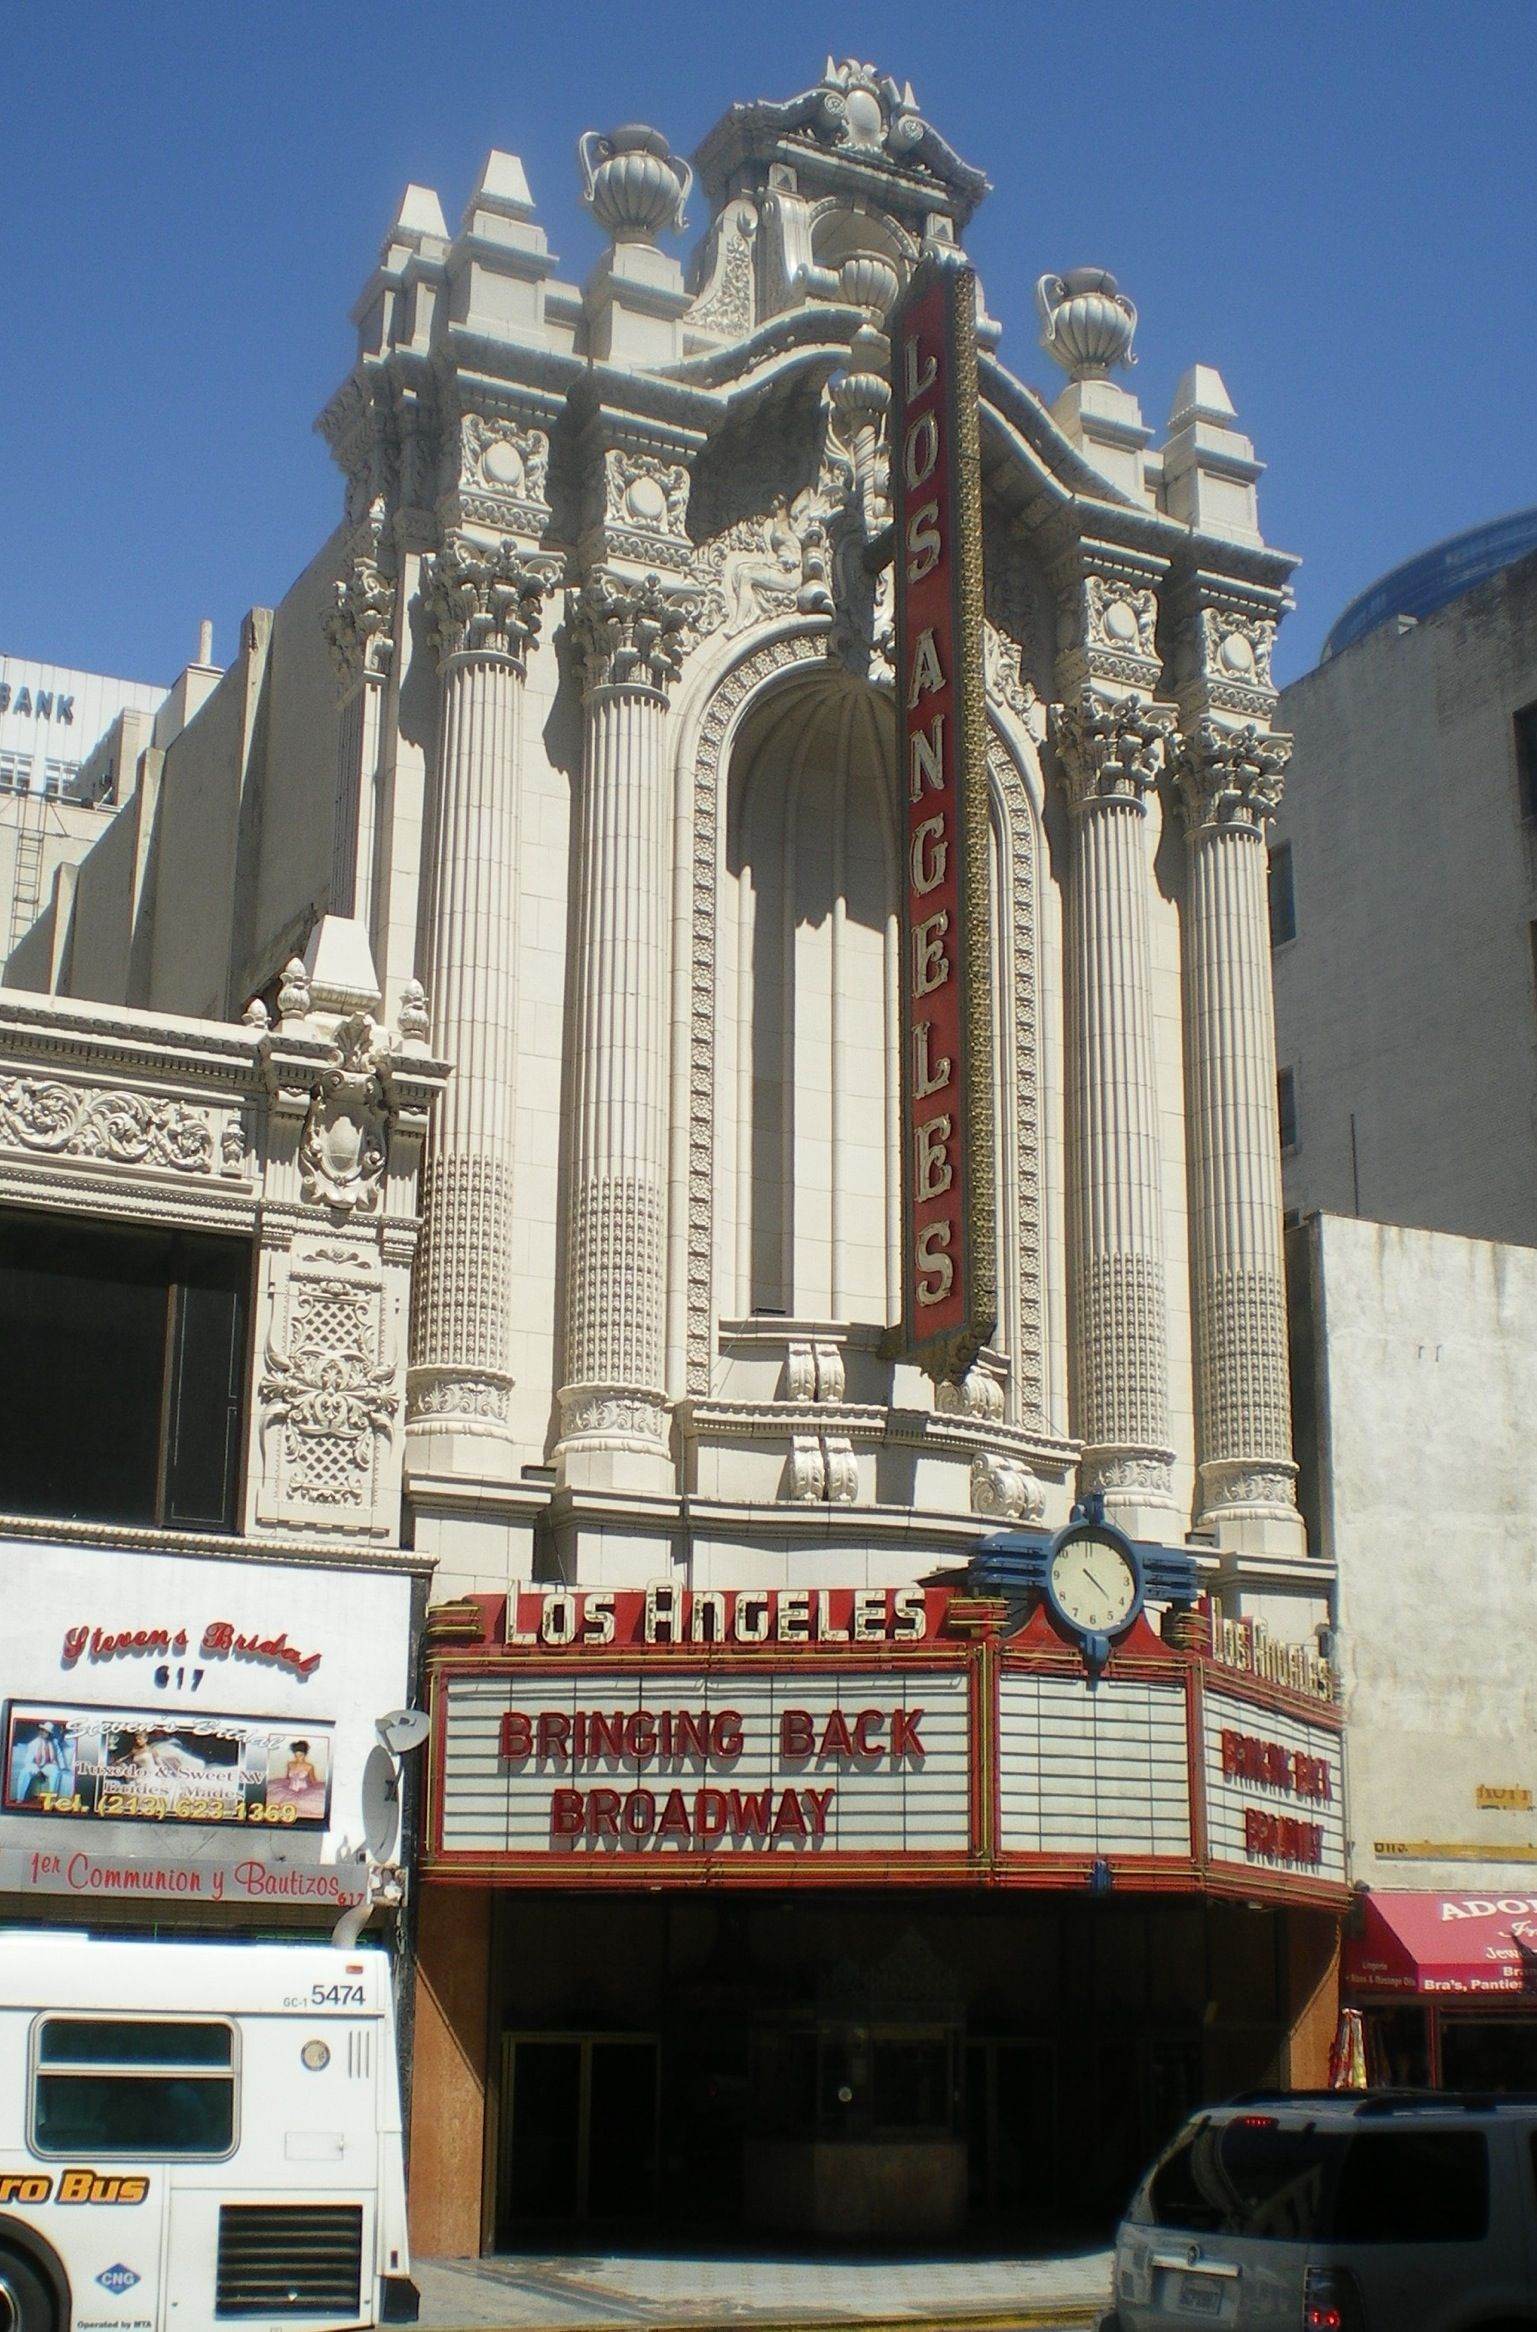 Los angeles theater on broadway los angeles ca